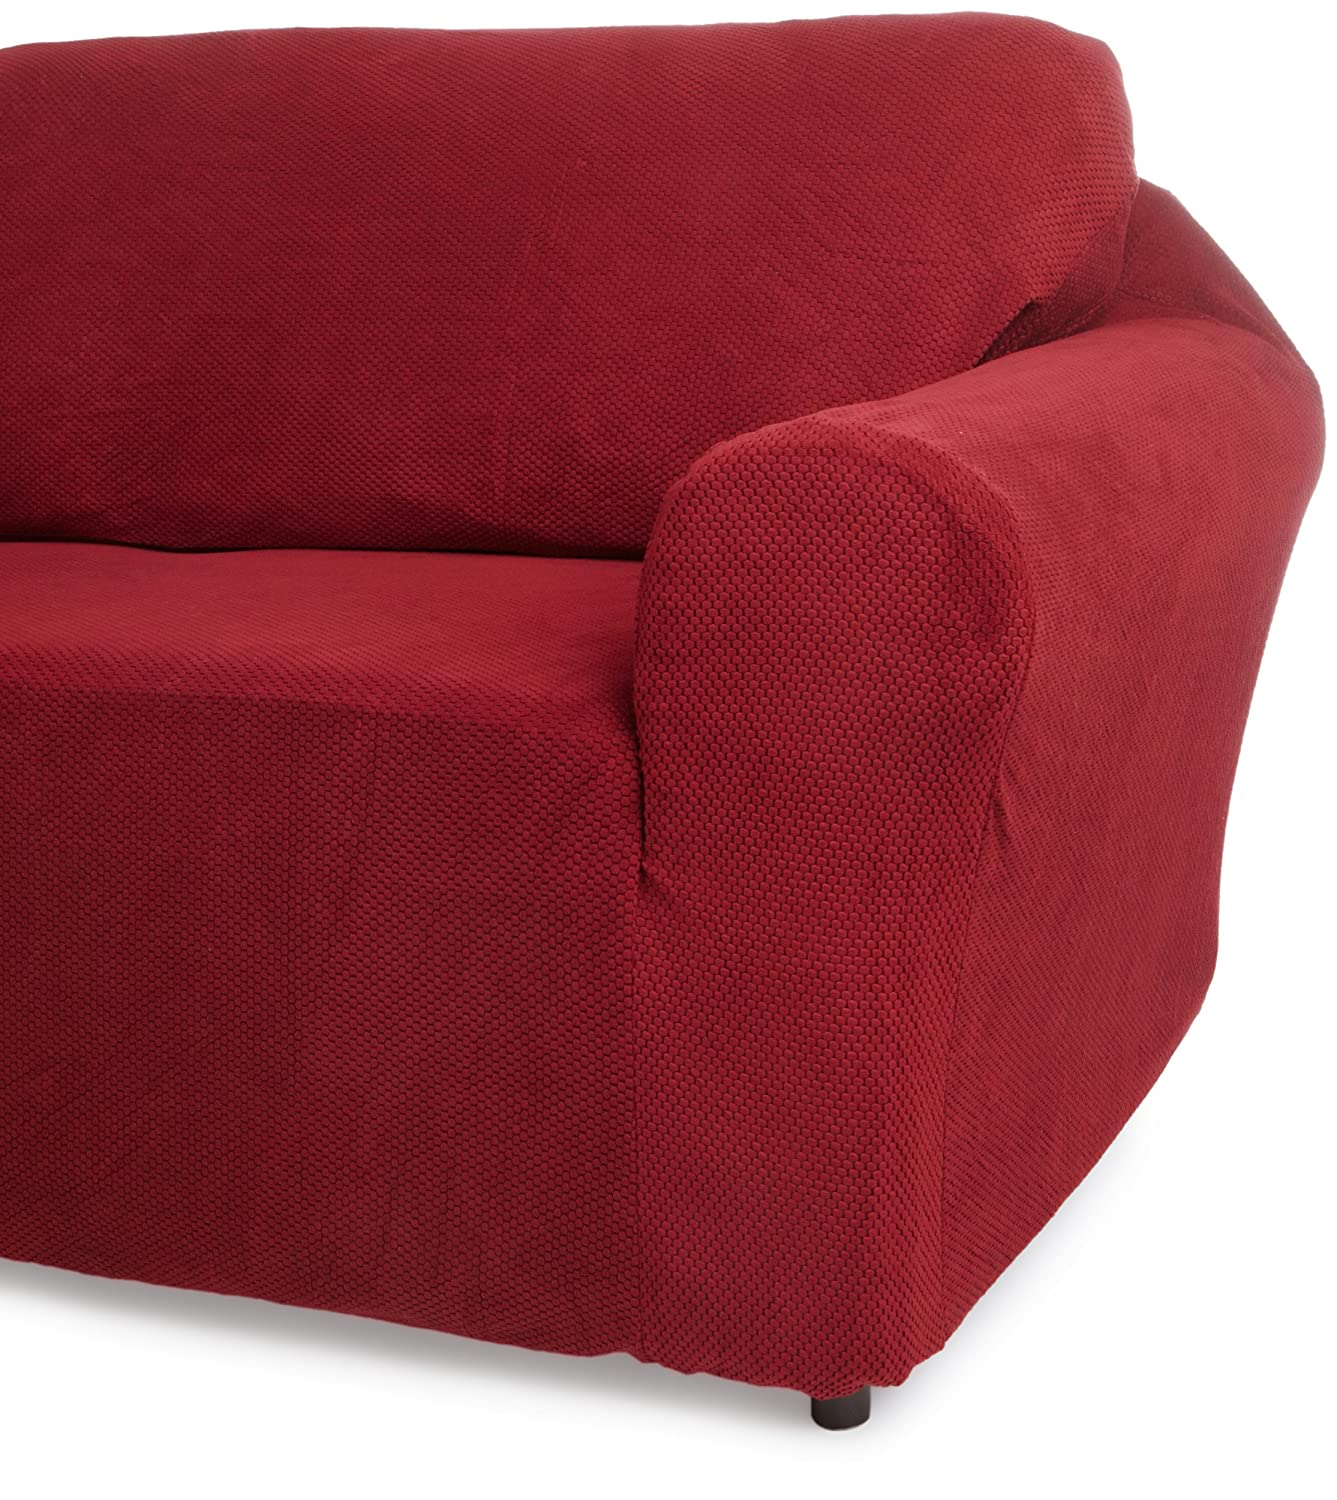 Amazon Classic SlipCovers 60 72 Inch Loveseat Cover f